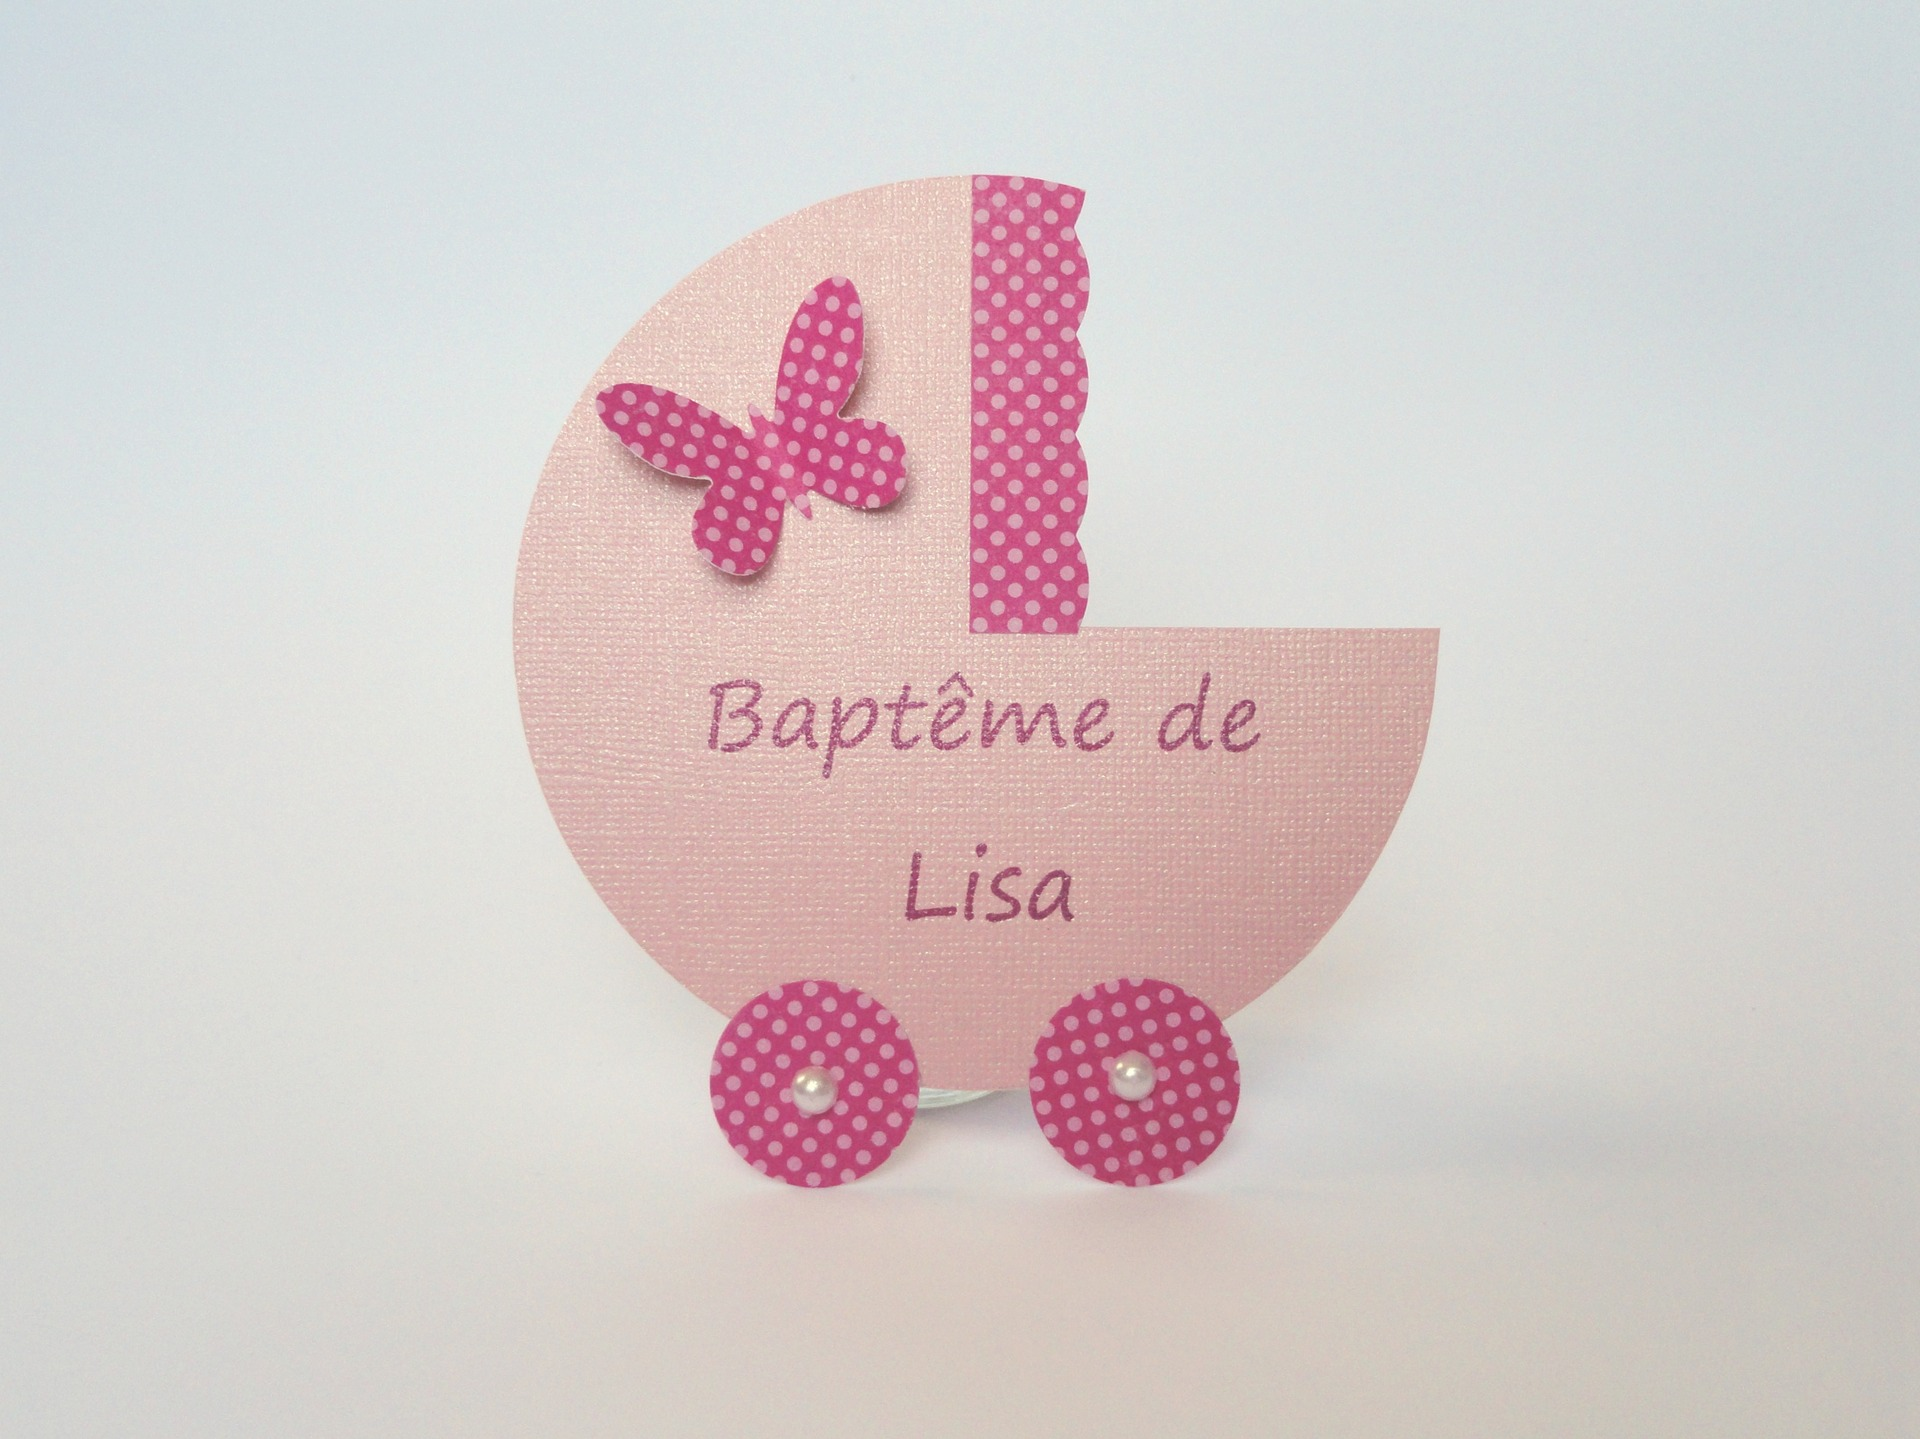 Super Faire part de bapteme fille - La boutique de Maud TB34